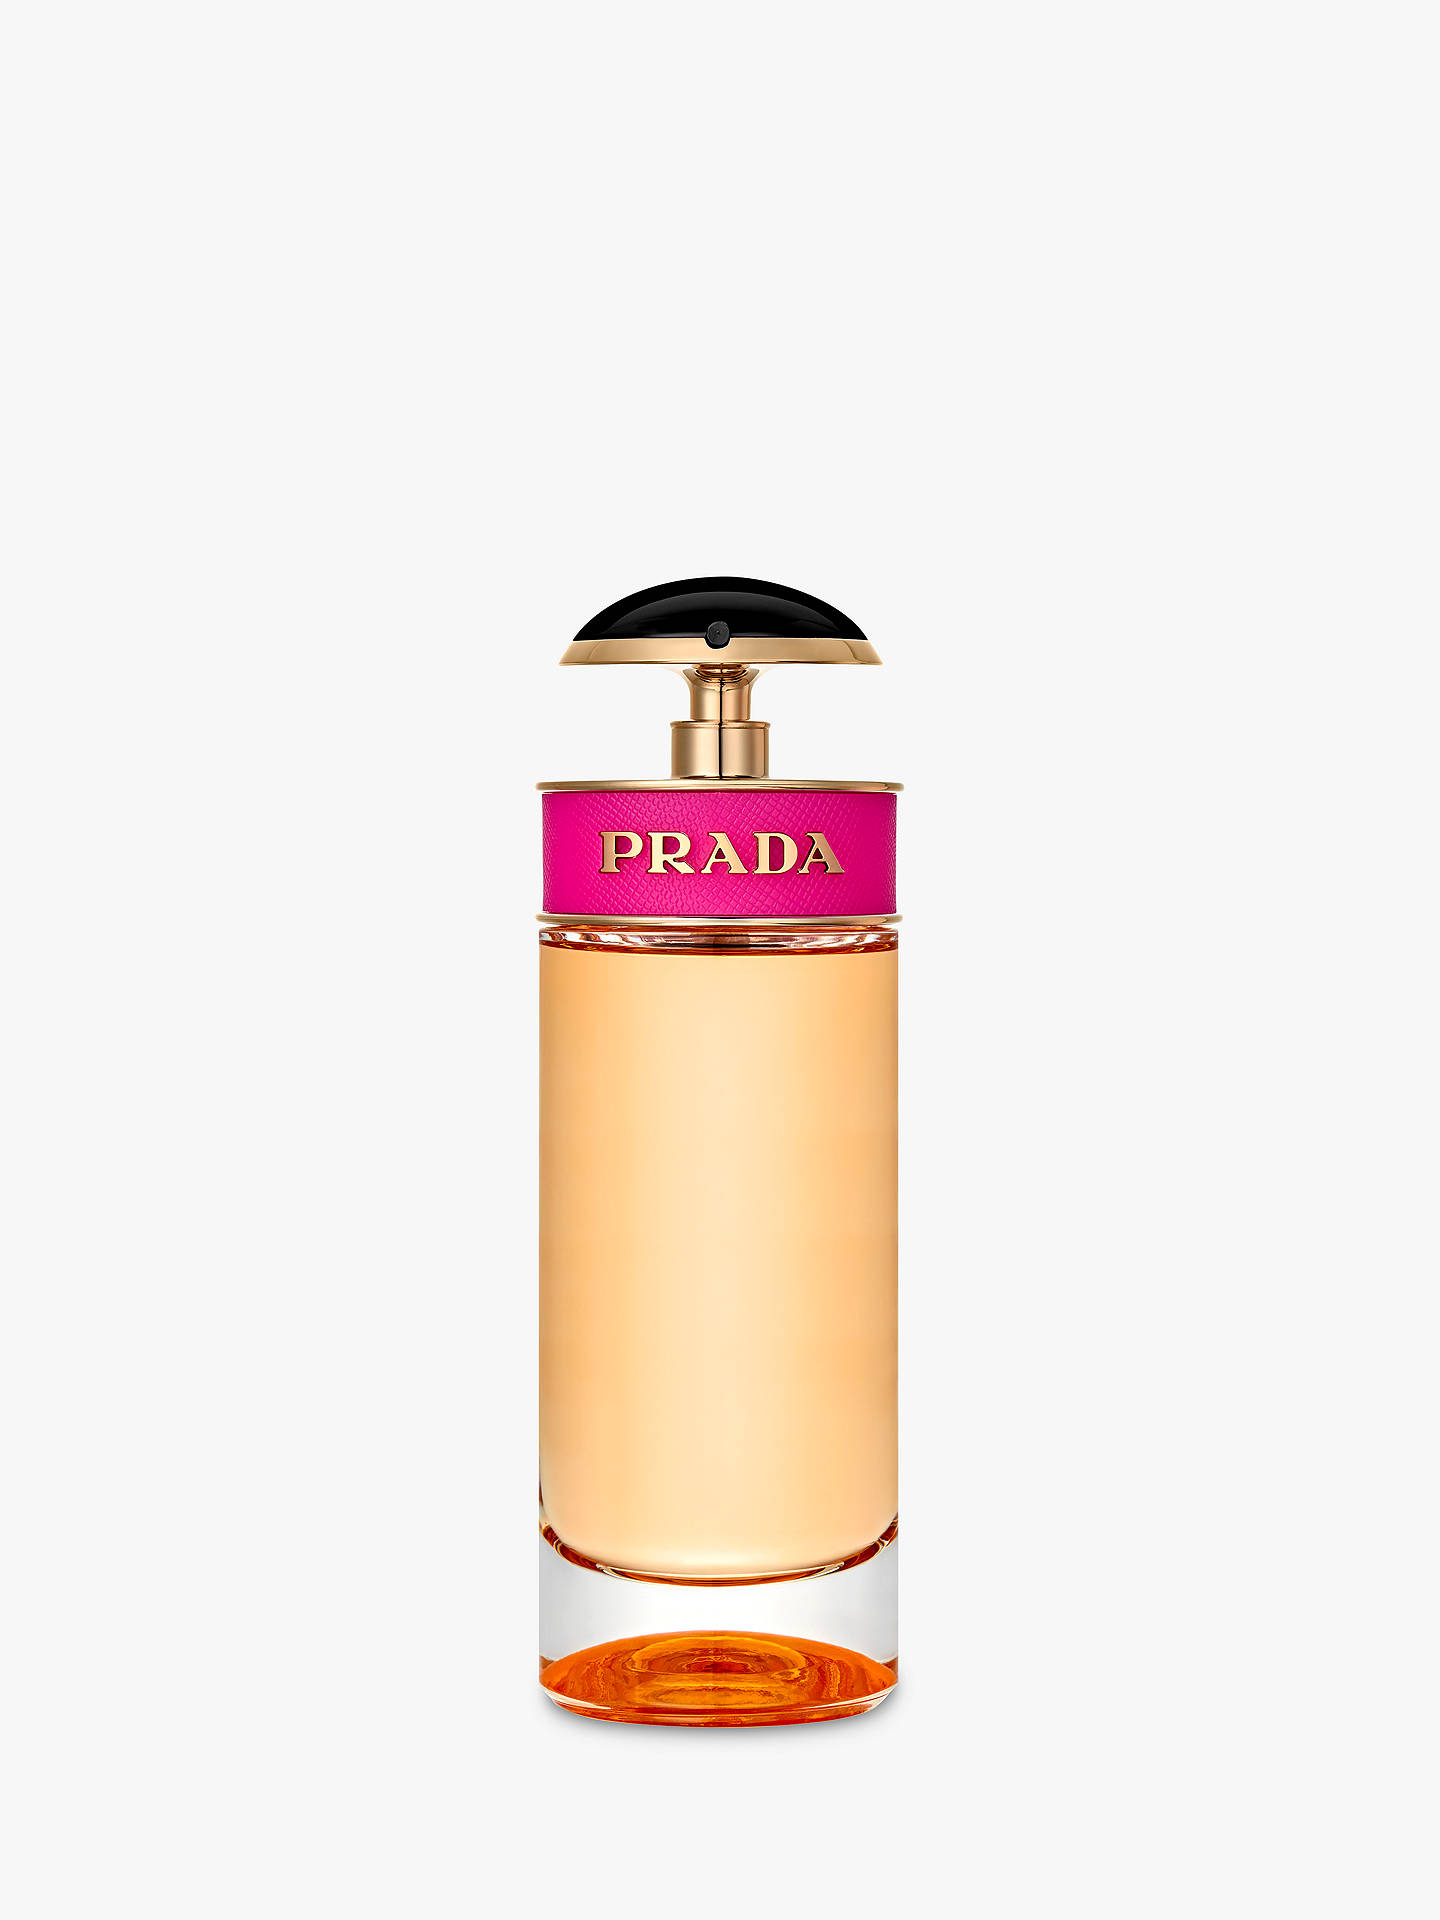 BuyPrada Candy Eau de Parfum, 30ml Online at johnlewis.com